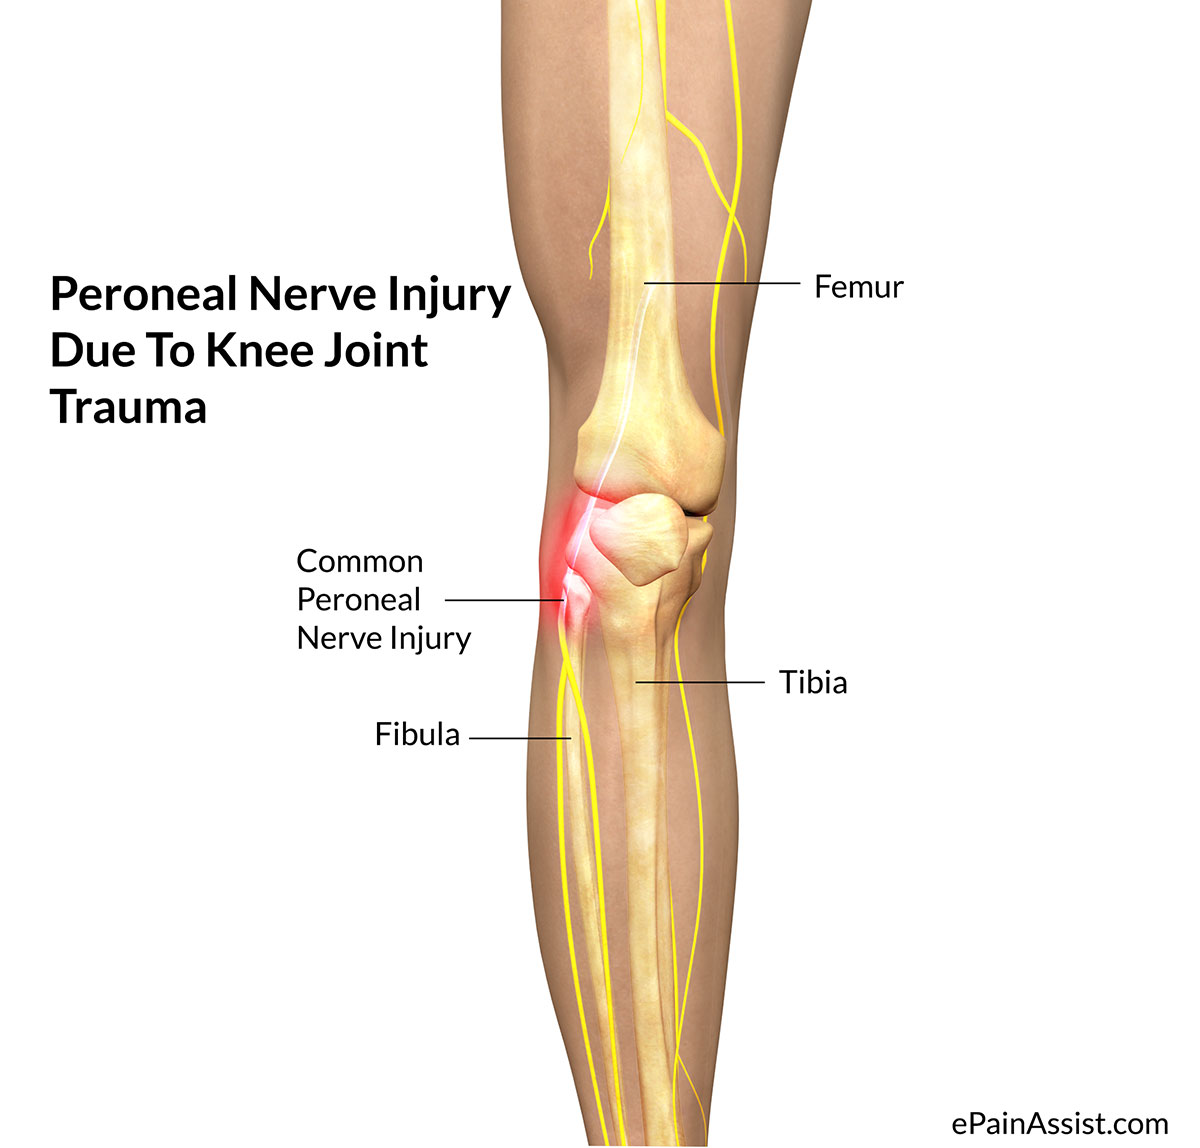 Peroneal Nerve Injury - Treatment, Causes, Symptoms